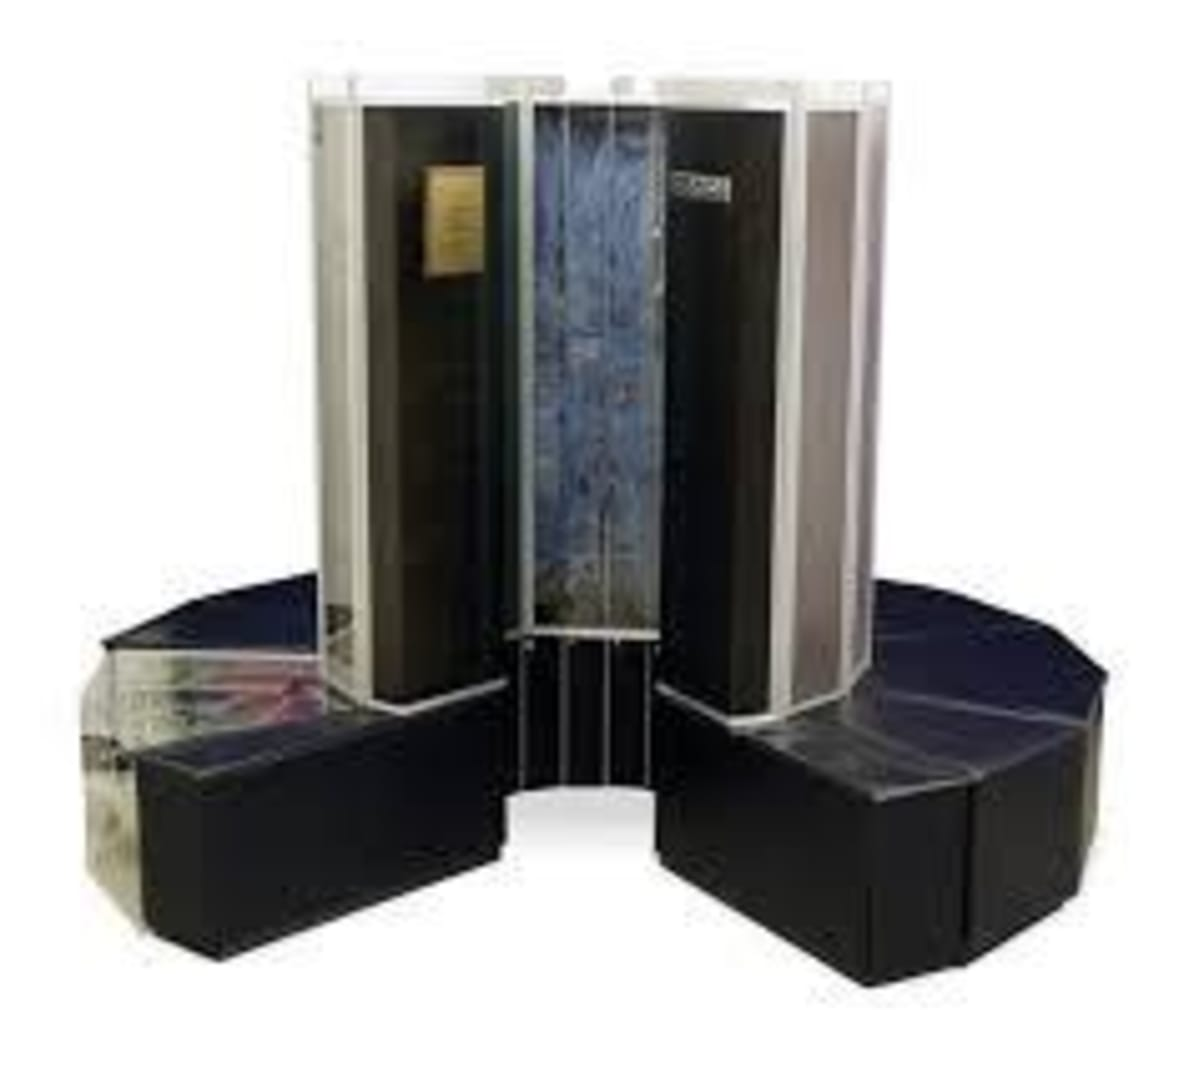 The very distinctive design of the Cray-1. At a cost of $8.8 million the first one was installed at Los Alamos National Laboratory in 1976. It was capable of 160 million floating-point operations per second (160 megaflops) and an 8 MP (1 million word) main memory.